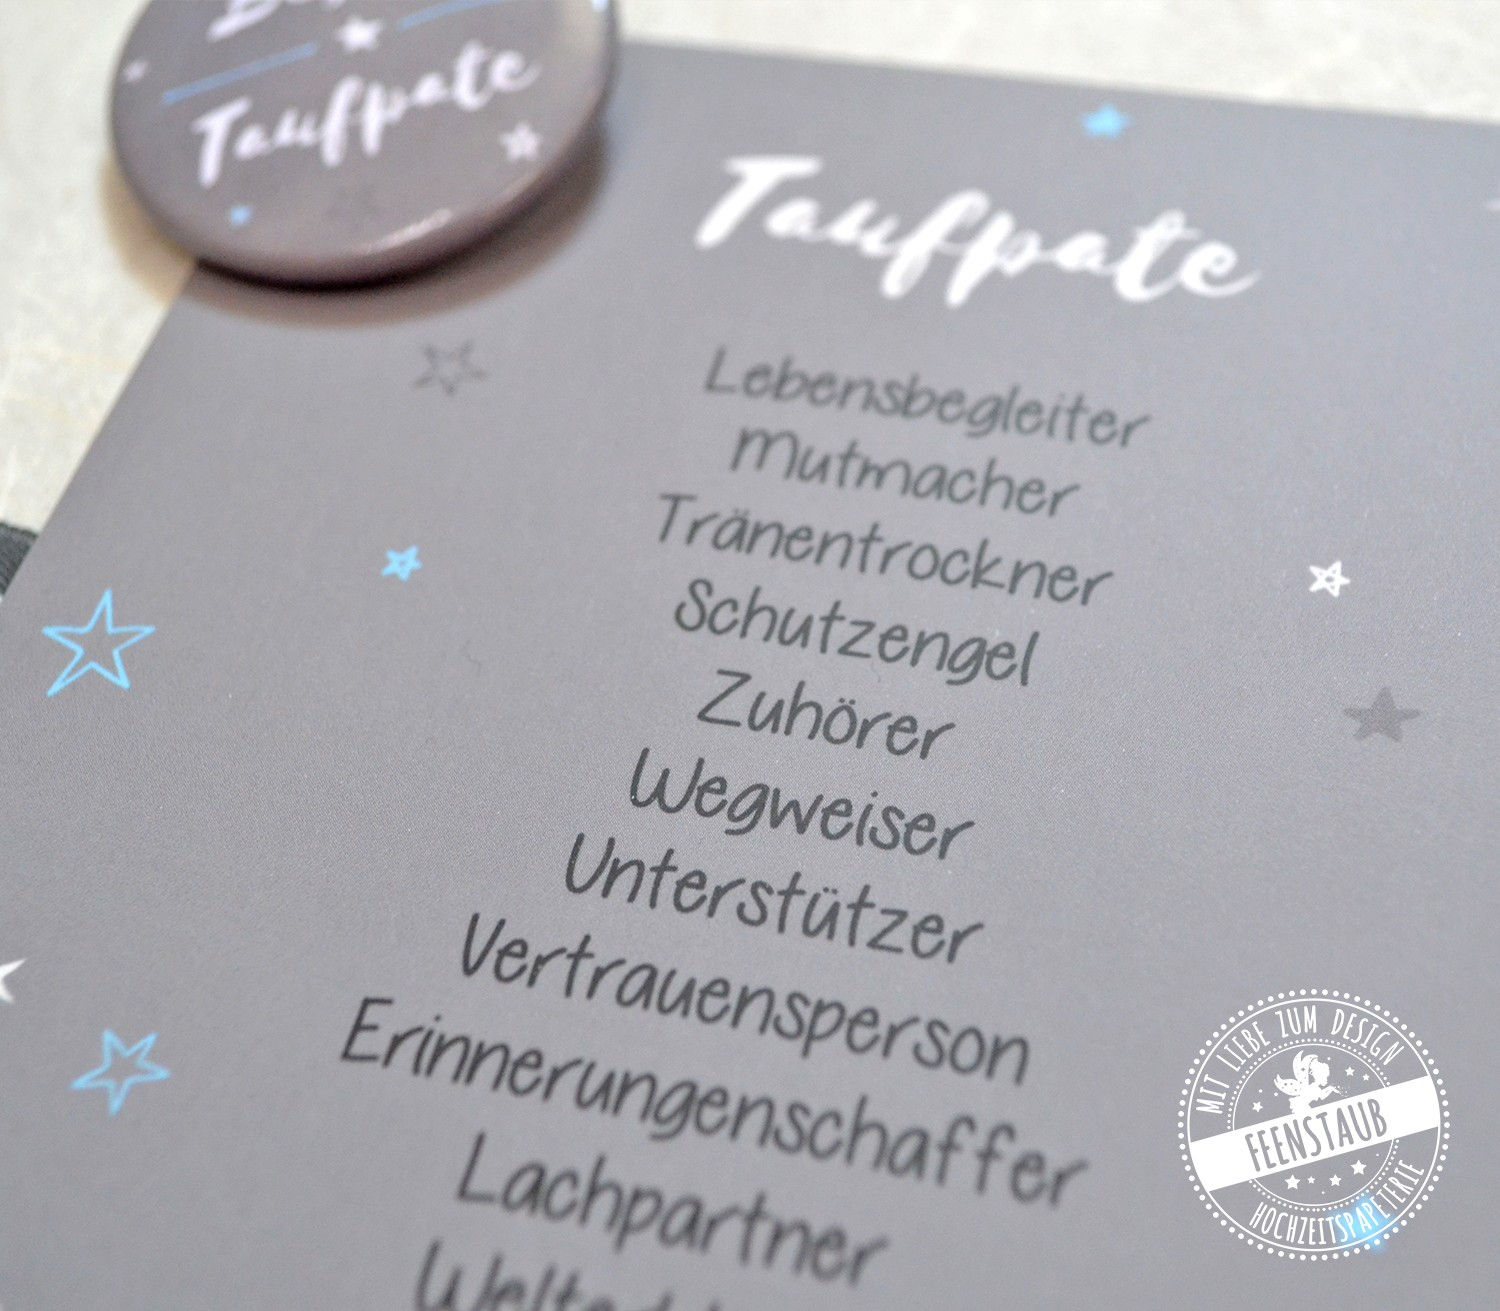 Taufpate